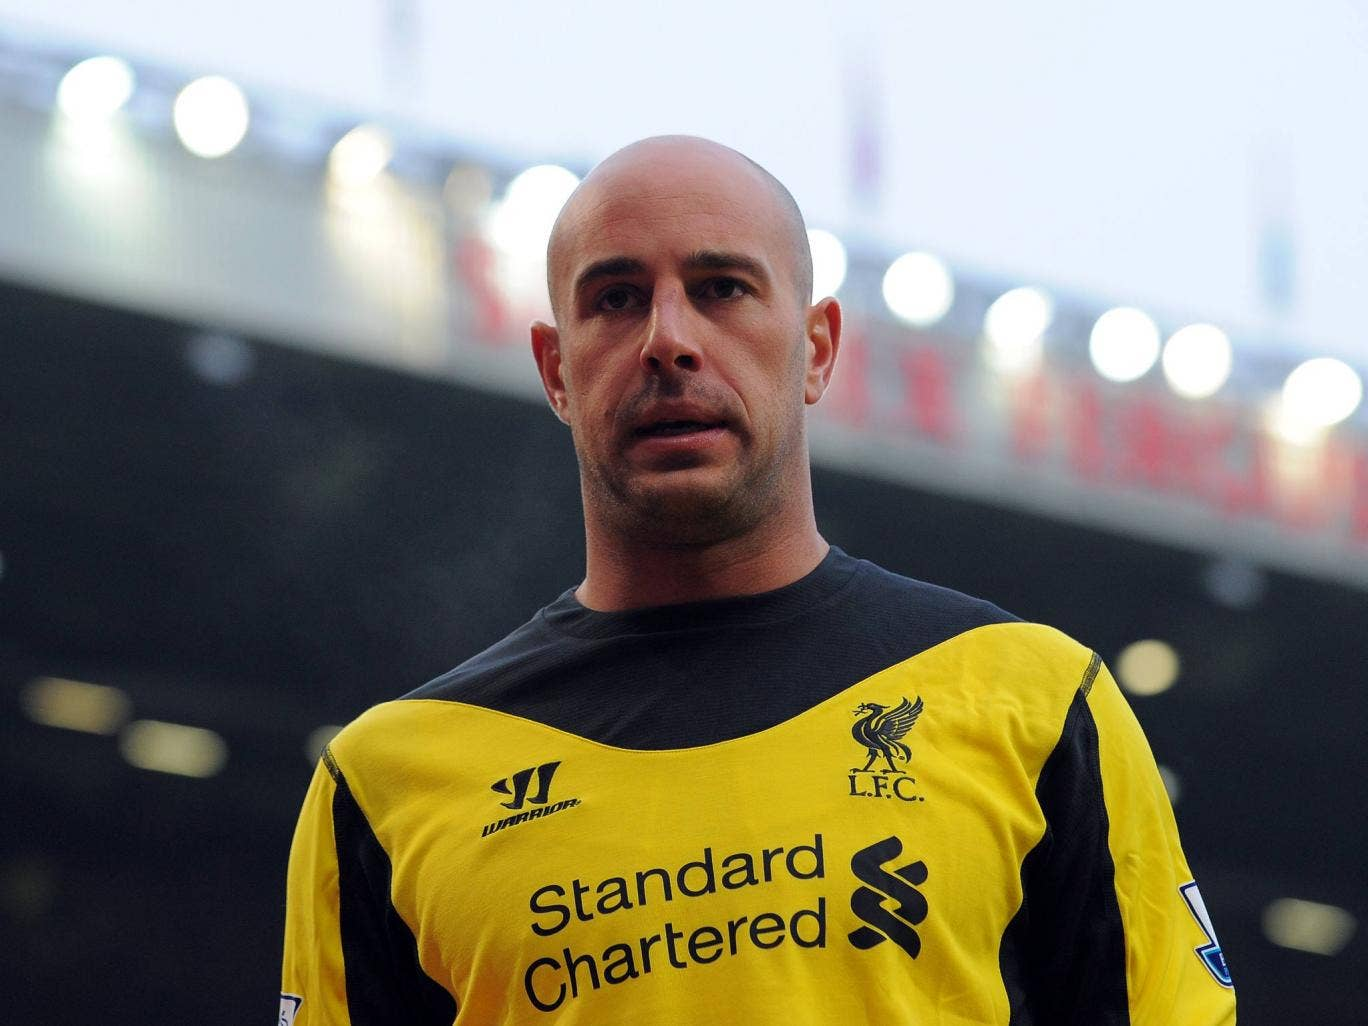 <b>Pepe Reina</b><br/> Pepe Reina has seemingly always been linked with a move away from Liverpool, with United touted as one possible destination. However, with Victor Valdes announcing he will leave Barcelona, it's thought Reina will be approached to re